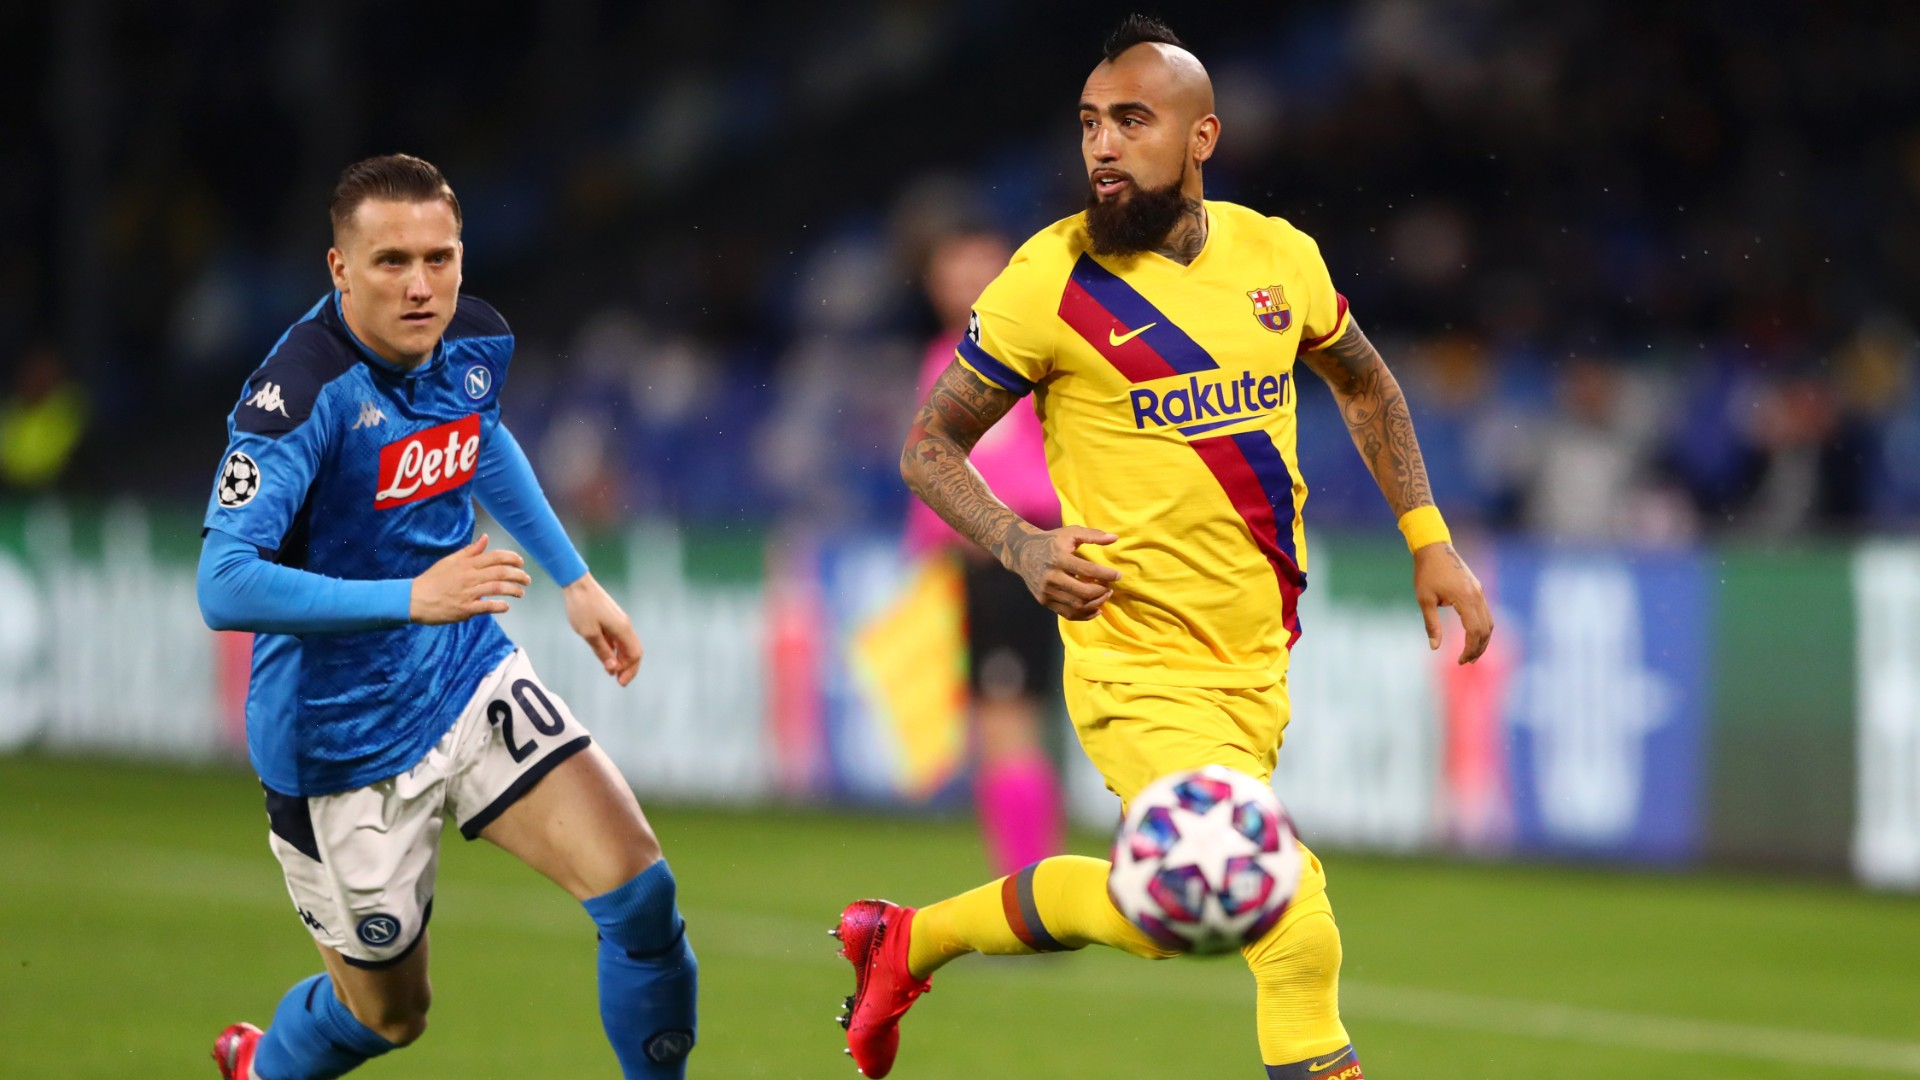 Napoli president Aurelio De Laurentiis concerned over Barcelona Champions League tie